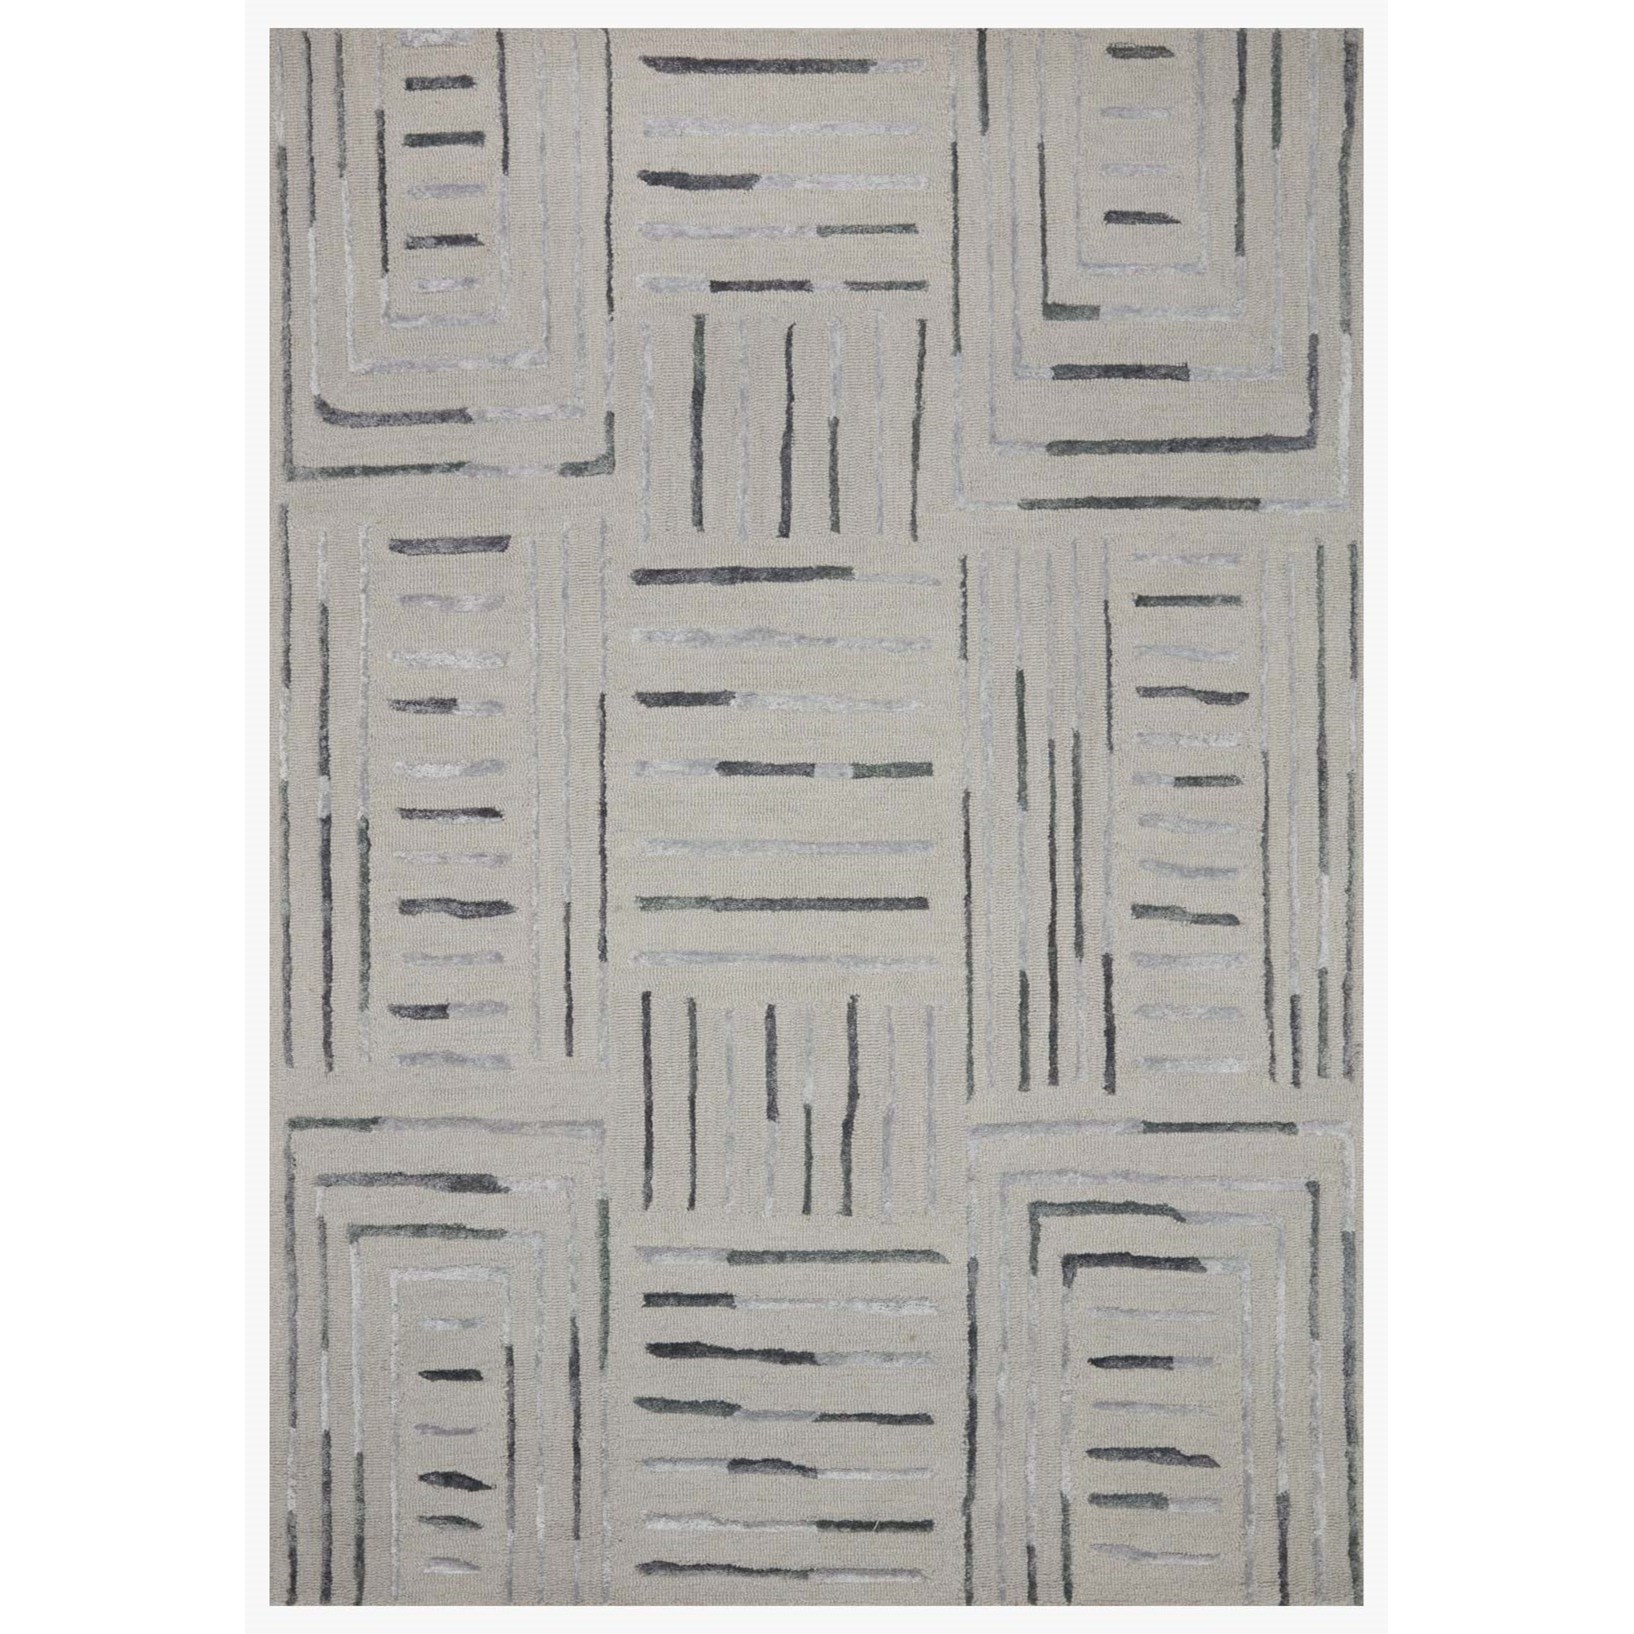 "Verve 5'0"" x 7'6"" Silver / Slate Rug by Loloi Rugs at Virginia Furniture Market"